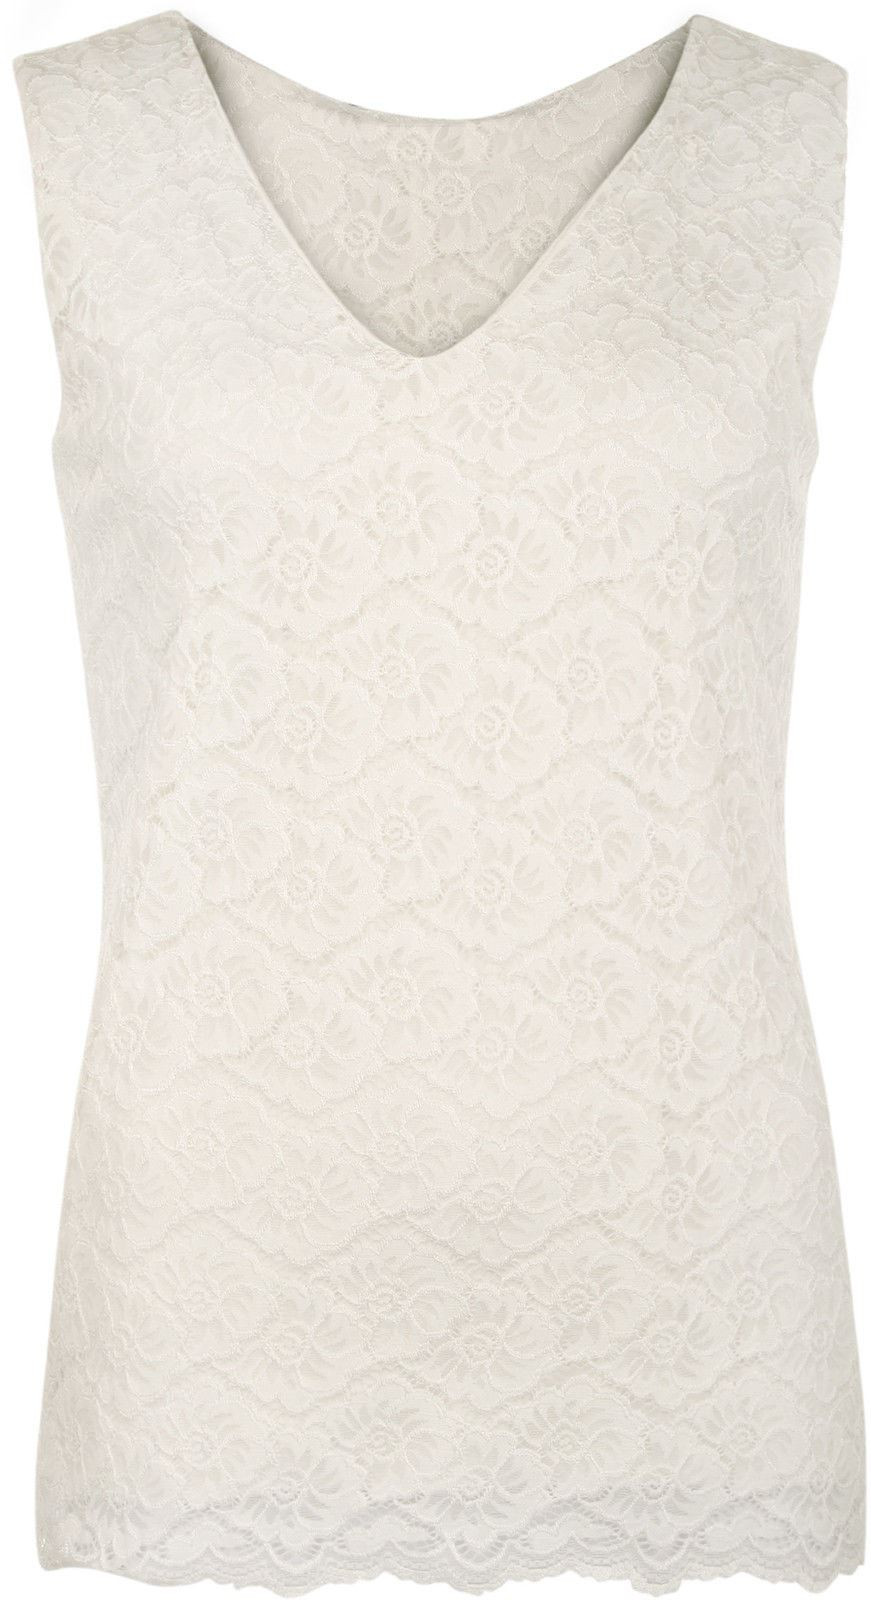 Plus Size Crochet Vest Awesome New Womens Ladies Plus Size Floral Lace Lined Crochet Of Fresh 49 Pics Plus Size Crochet Vest